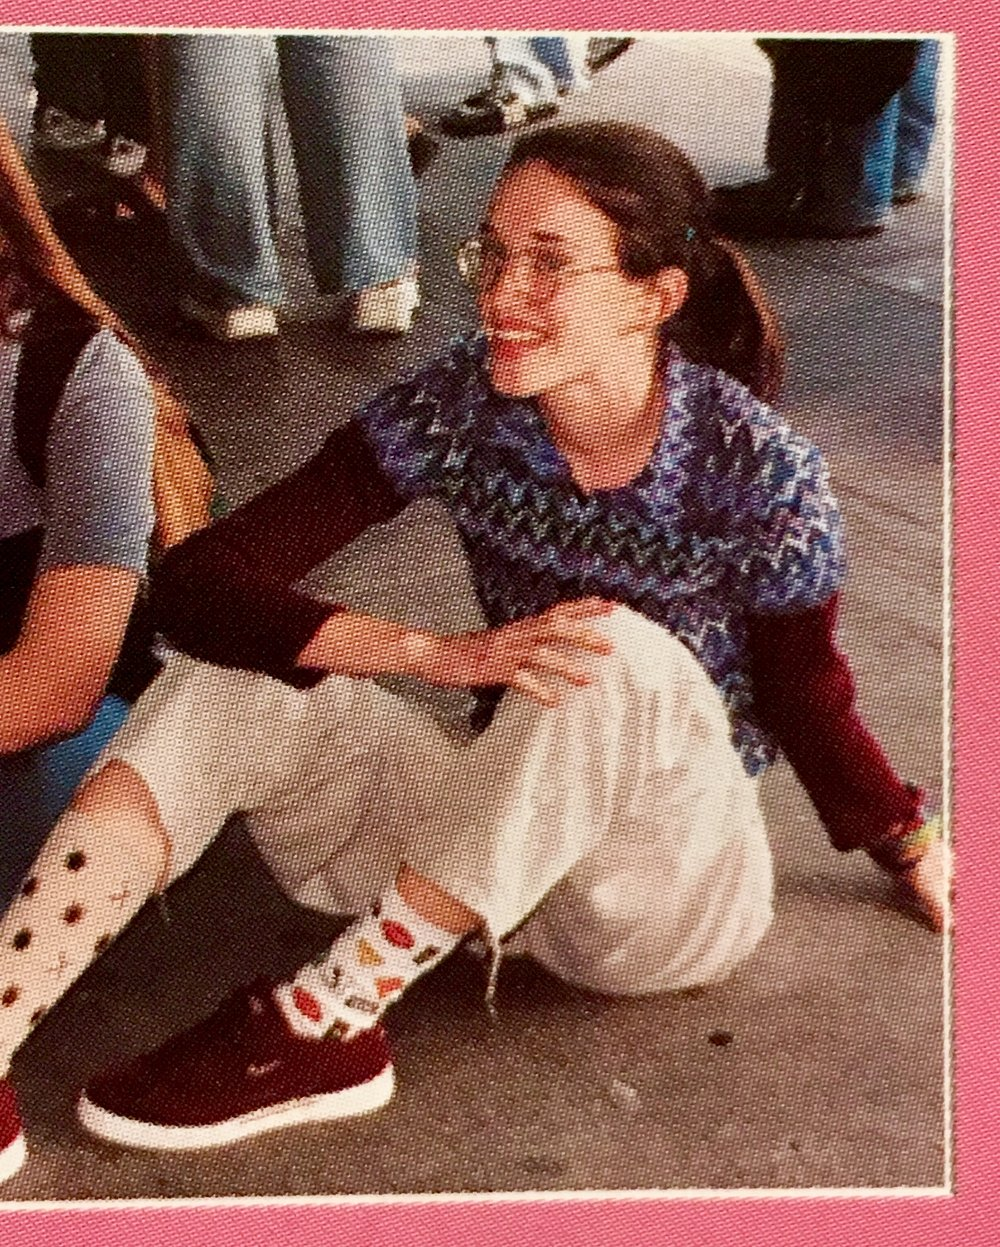 Also, this was how I dressed in the town I grew up in. On purpose, and I was immortalized this way in my yearbook. Furthermore, I don't regret it.